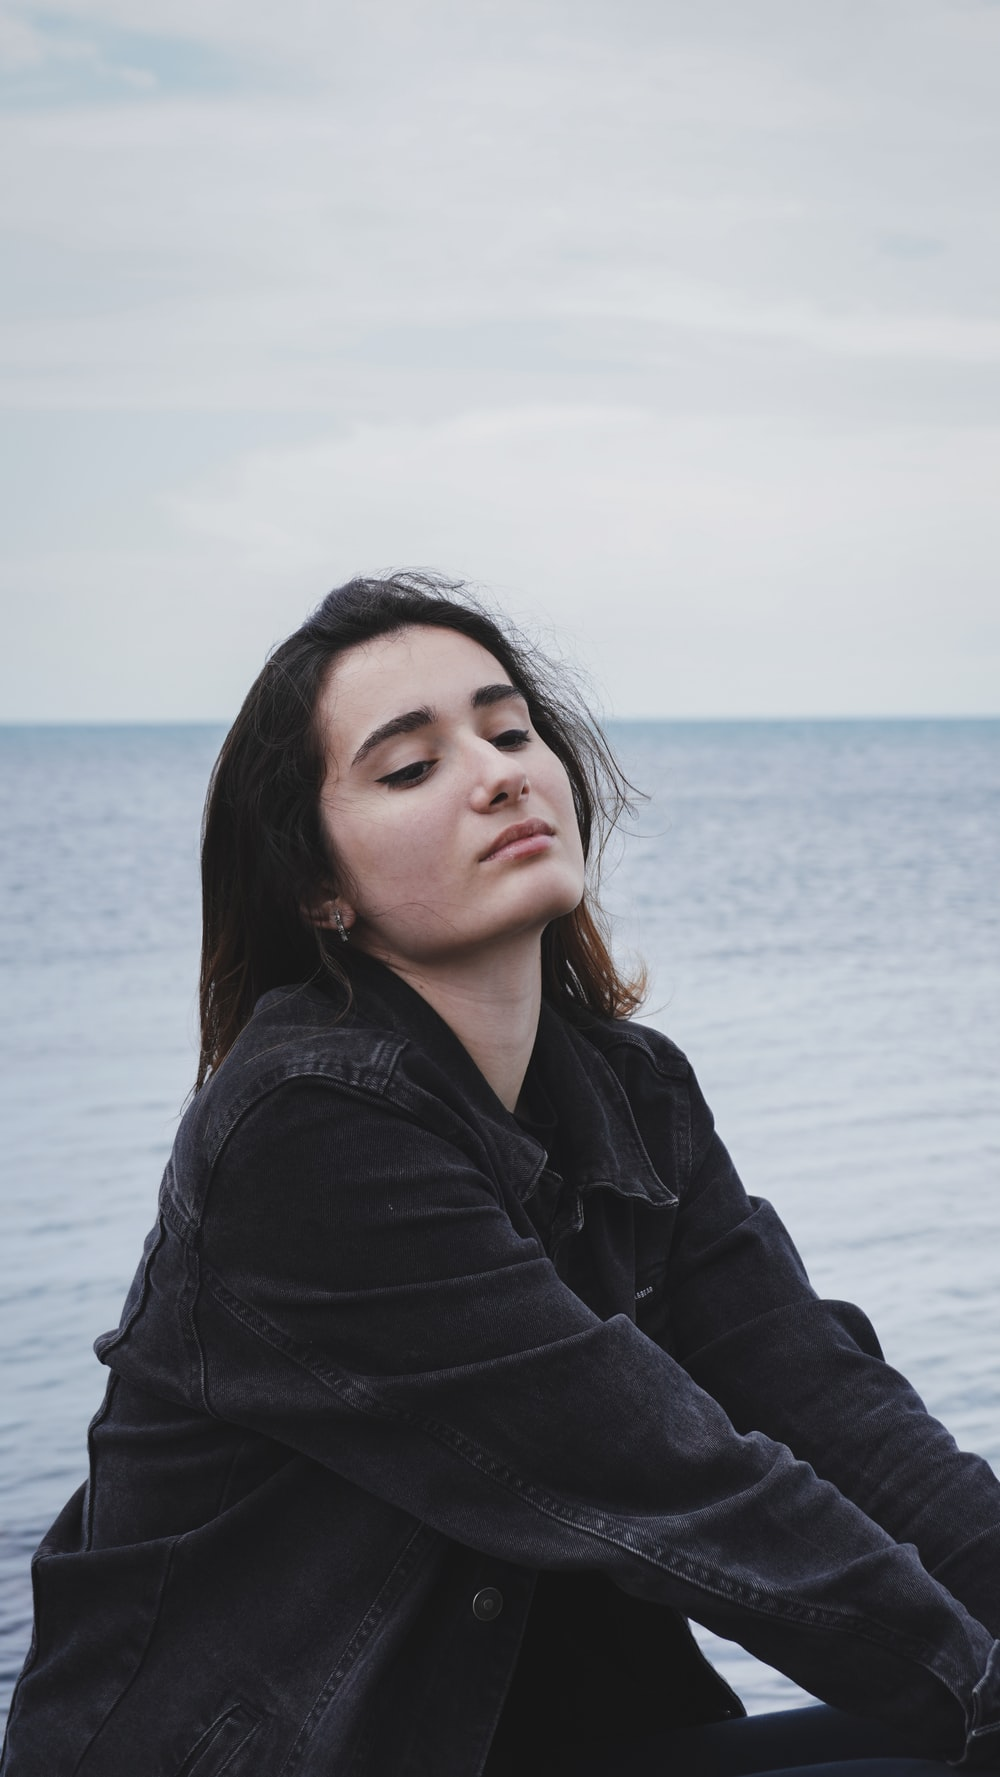 woman in black jacket standing near sea during daytime